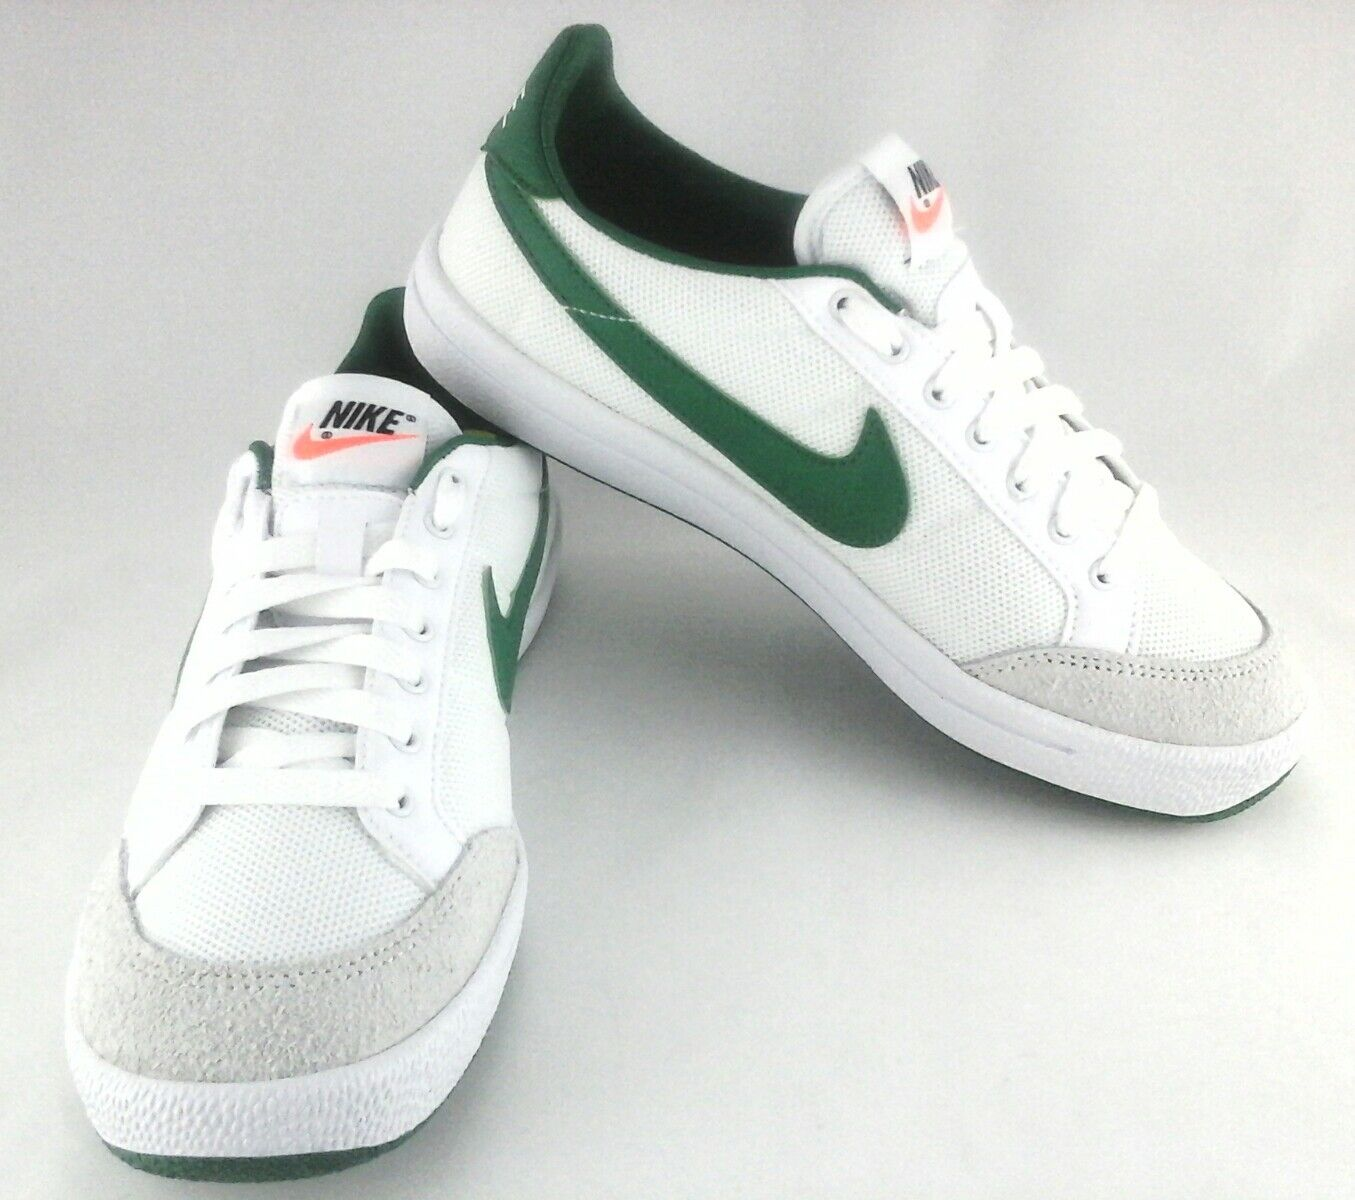 Nike orange Tag Meadow 16 TXT 833517 MENS Sneakers Sneakers Sneakers shoes Green US 7 2e0eff